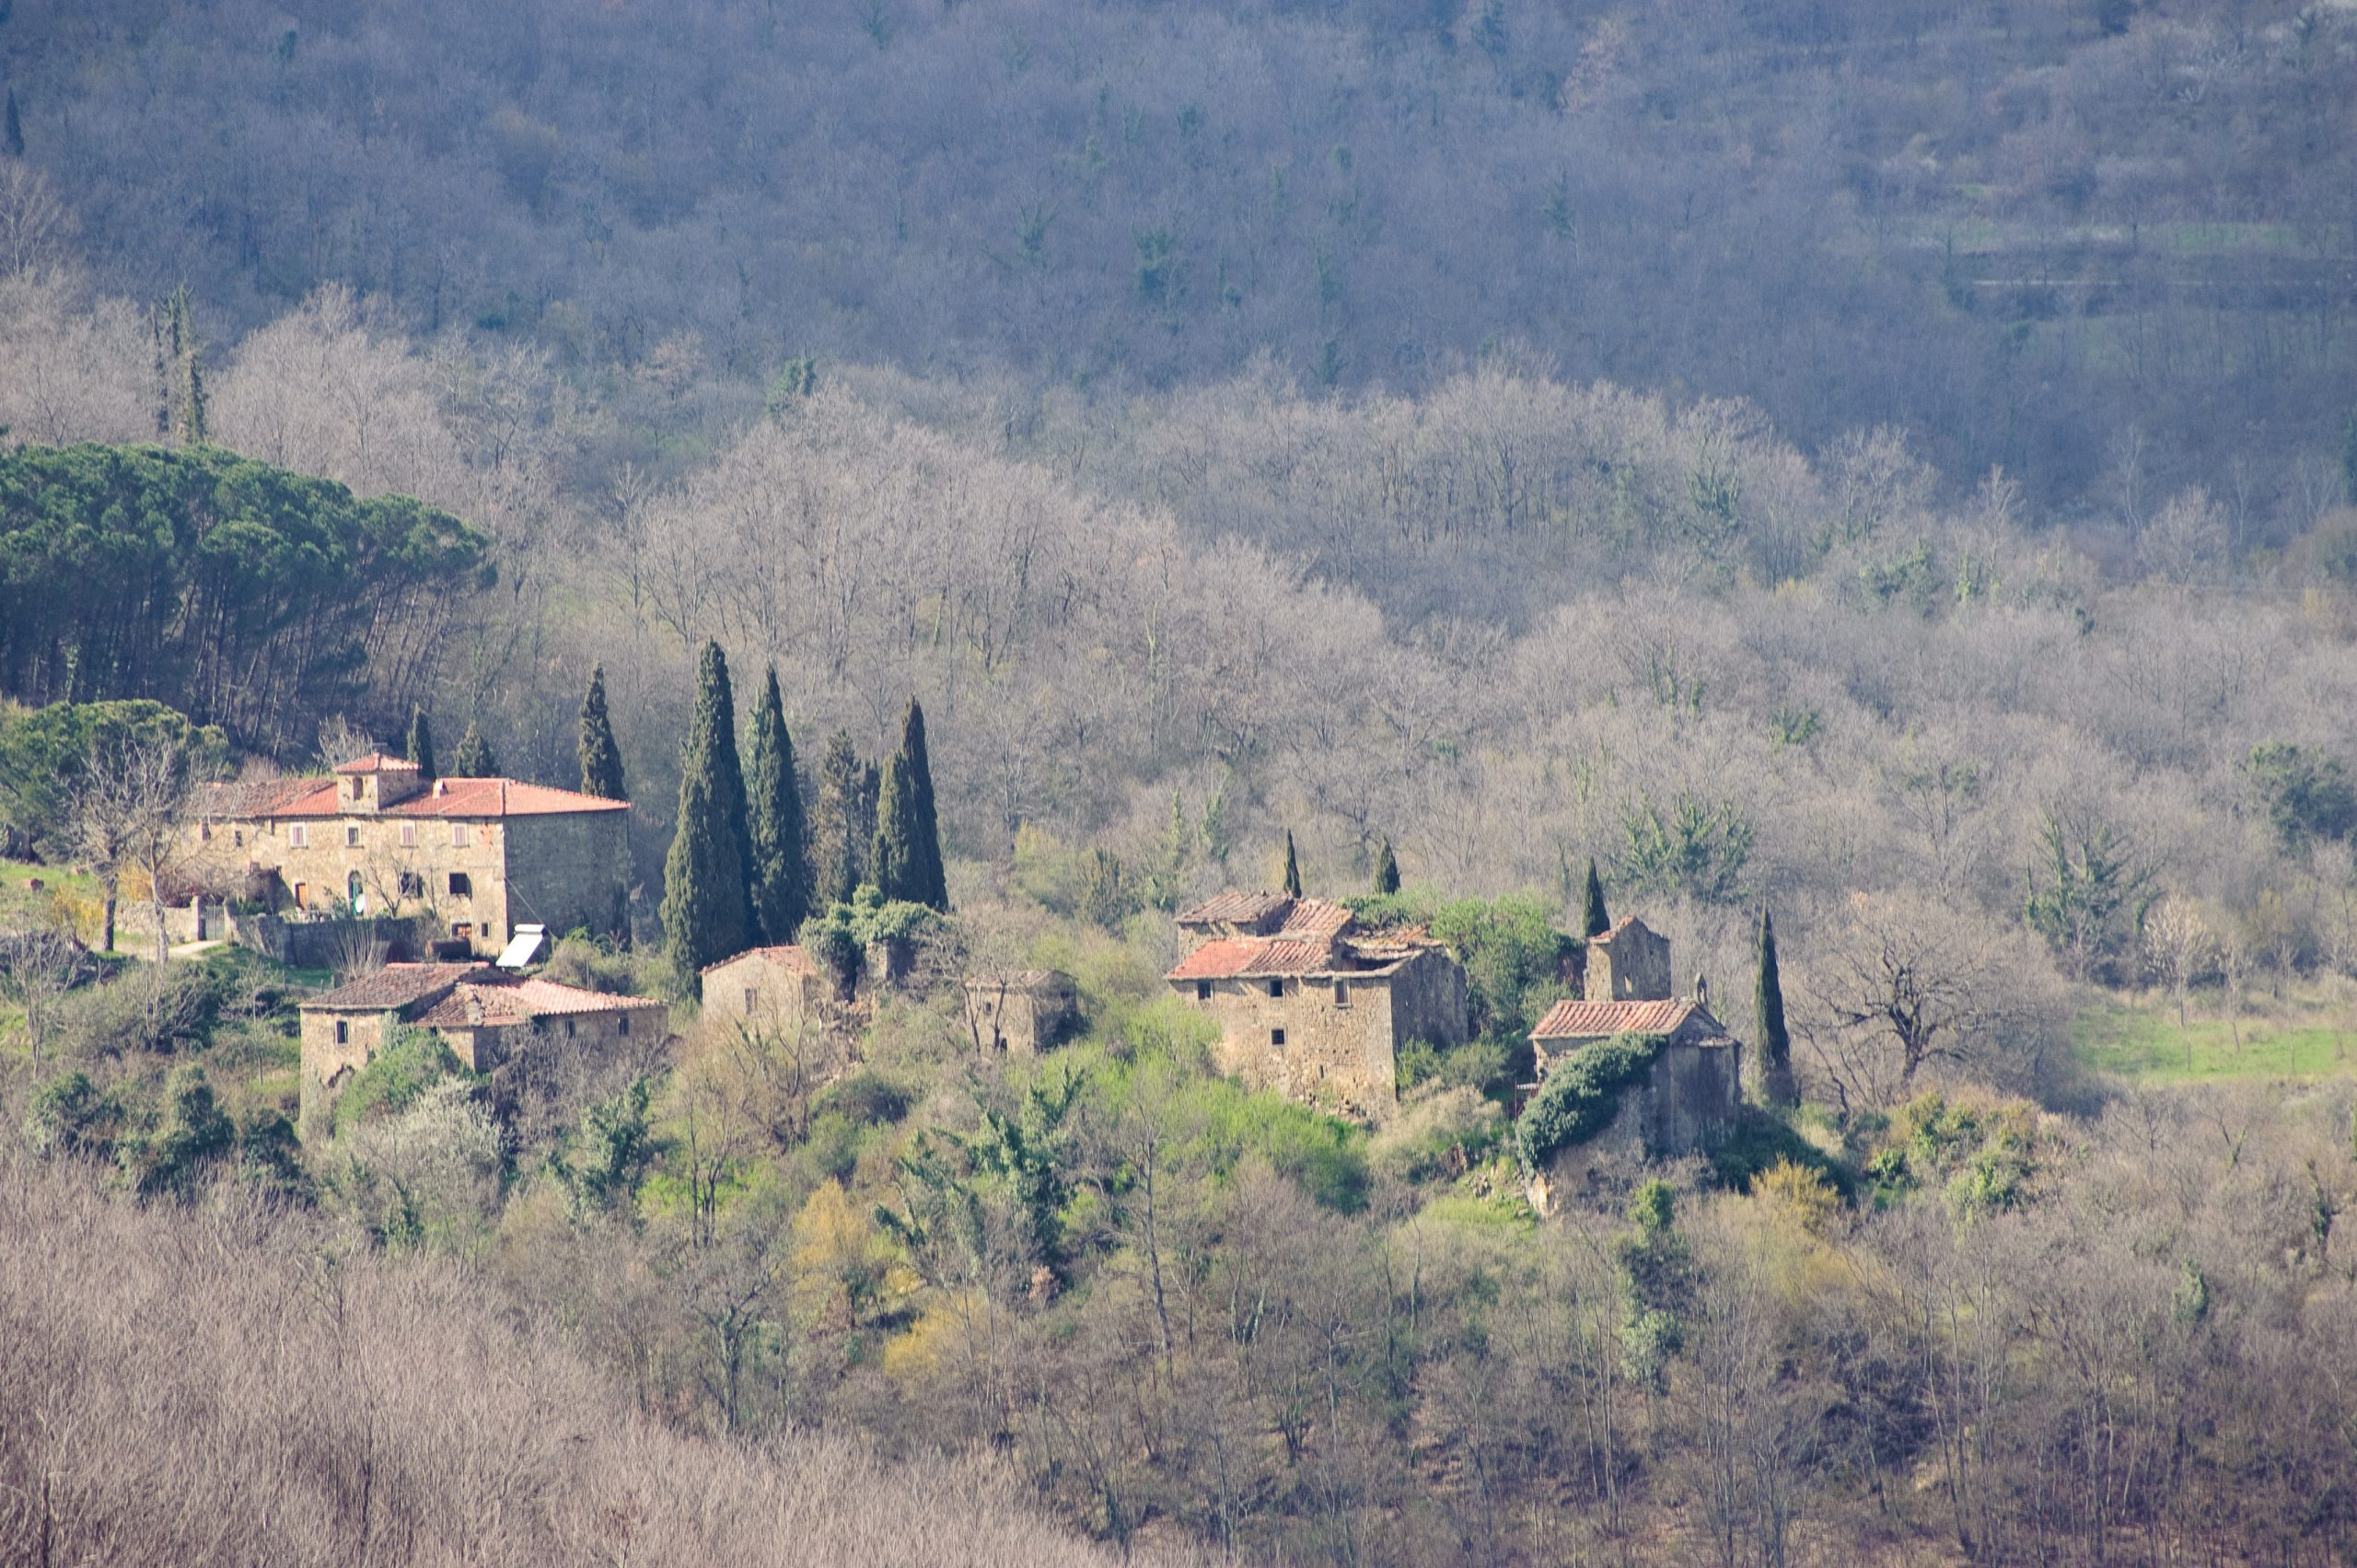 Italy-From Nepal to Tuscan Countryside